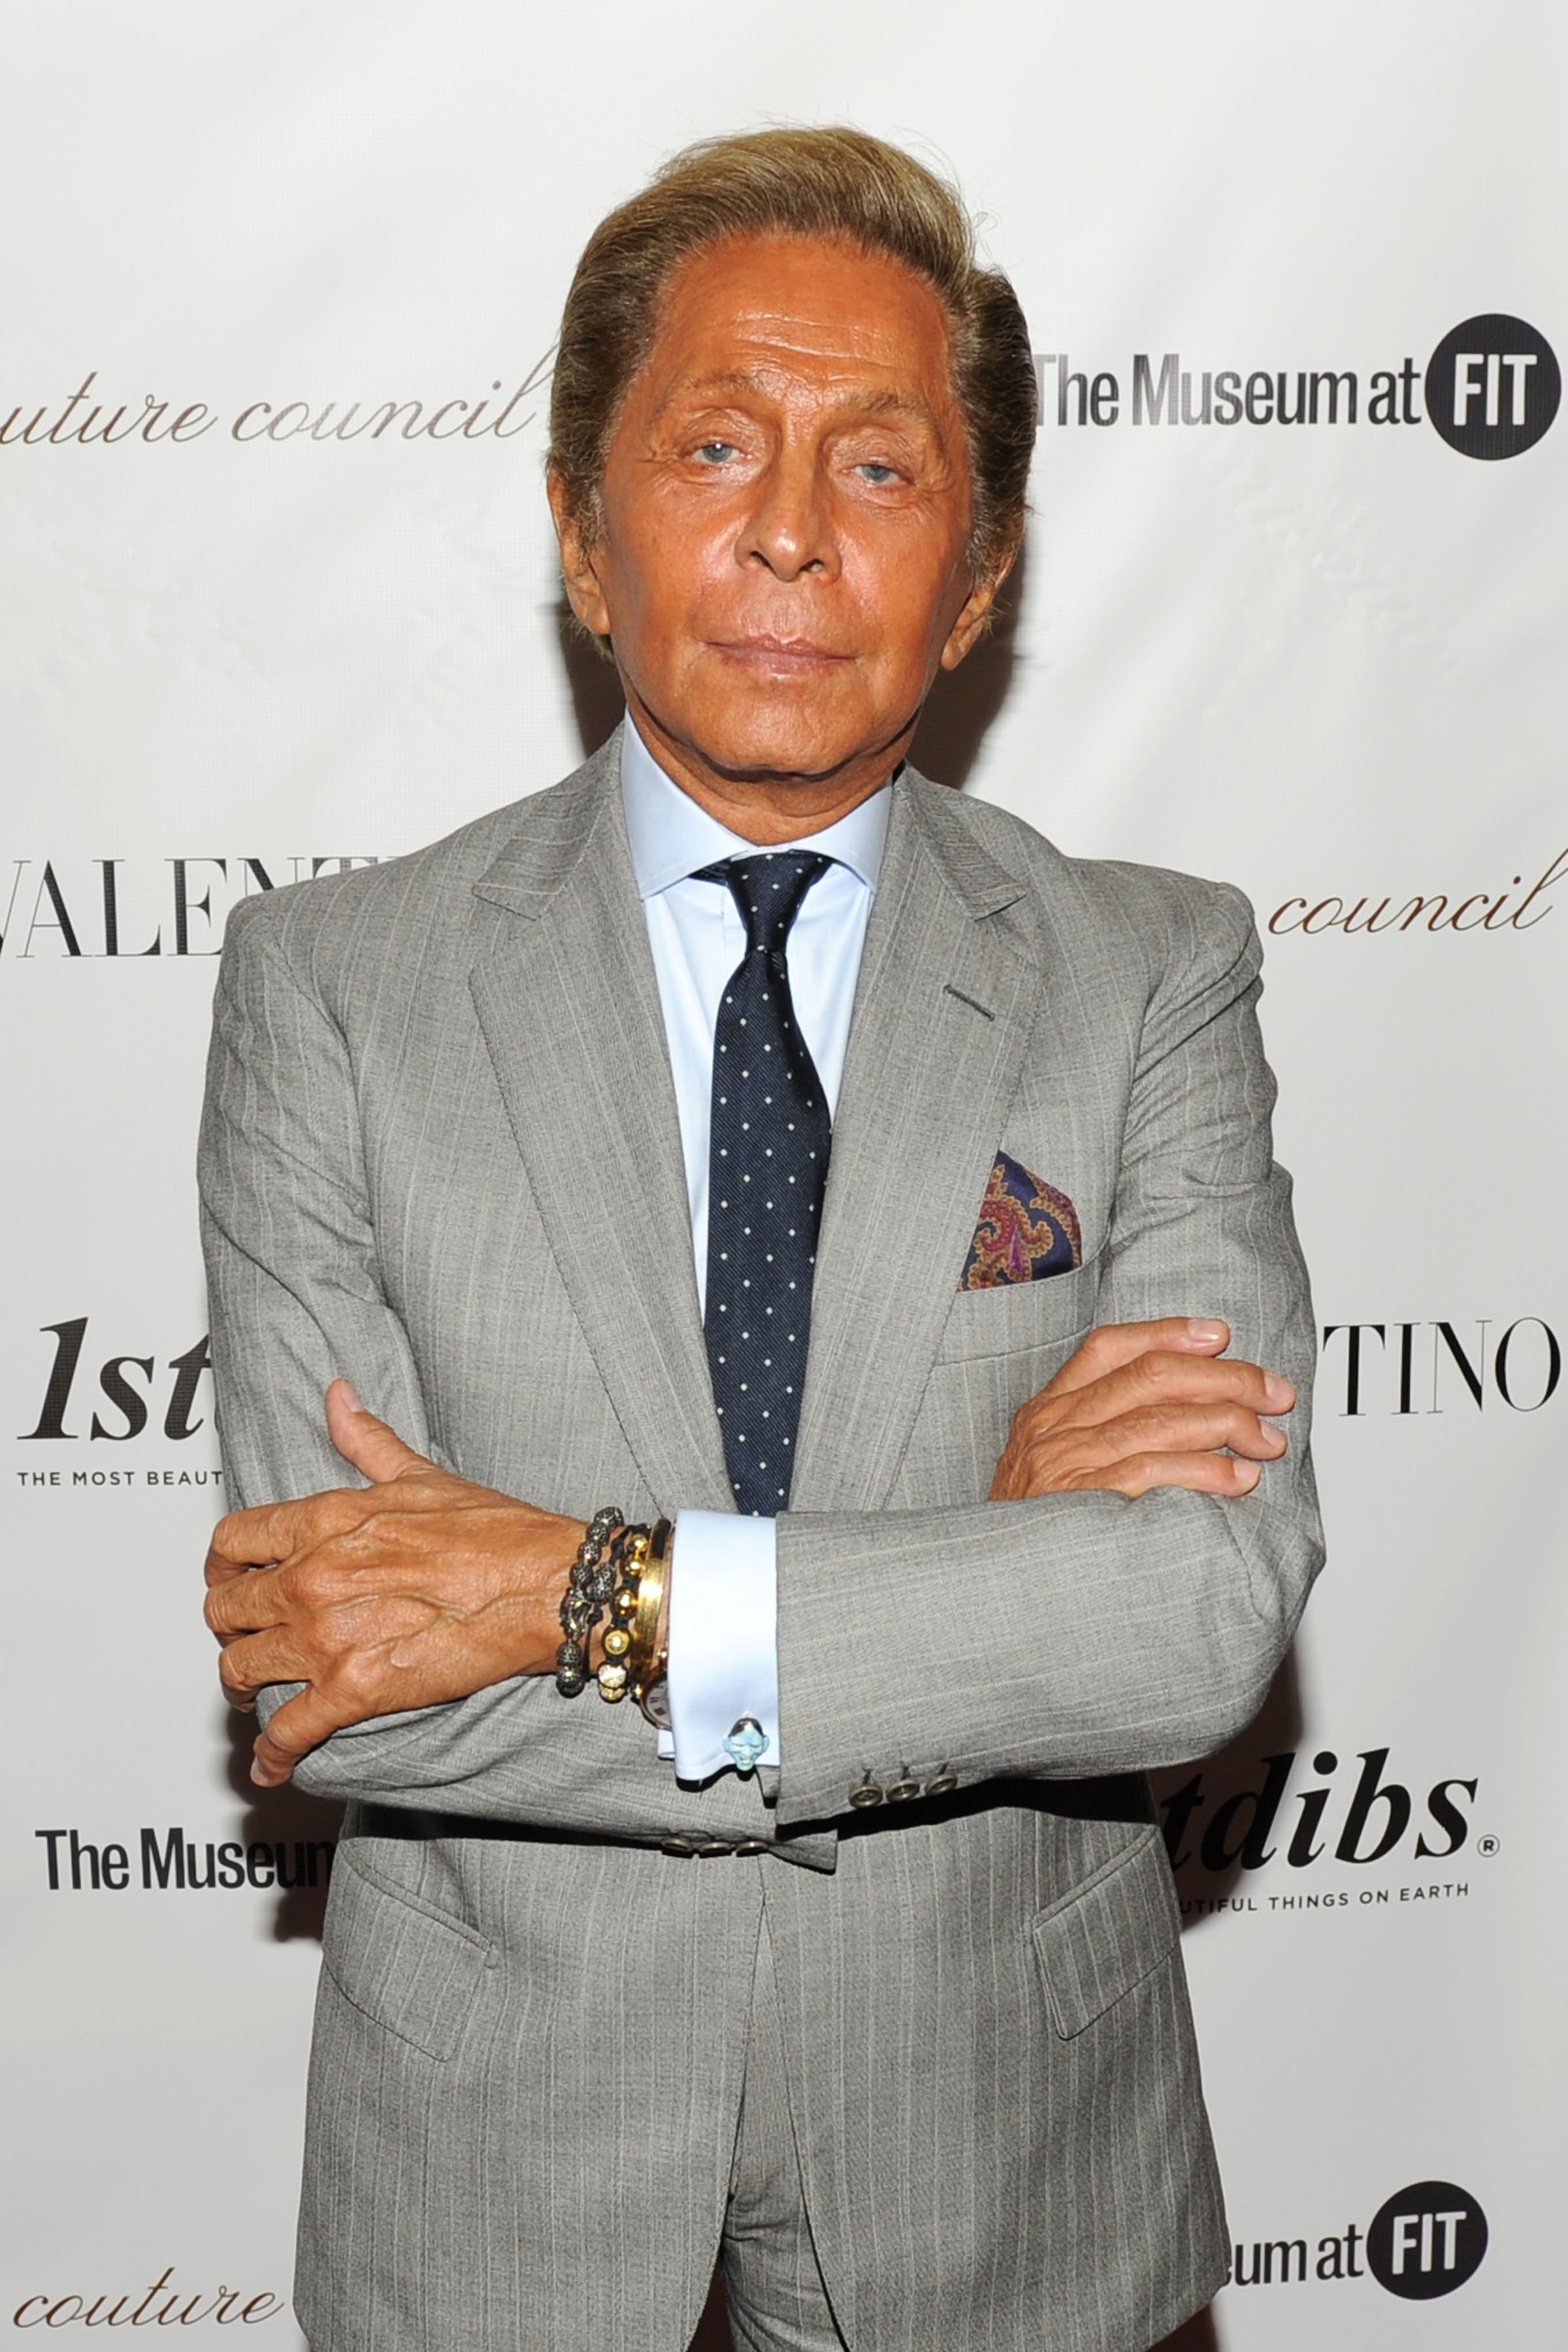 572d7d83cbdcb Valentino Garavani started his own line in Rome in 1959. By the mid-1960s,  he was a favorite designer of the world's best-dressed women, ...